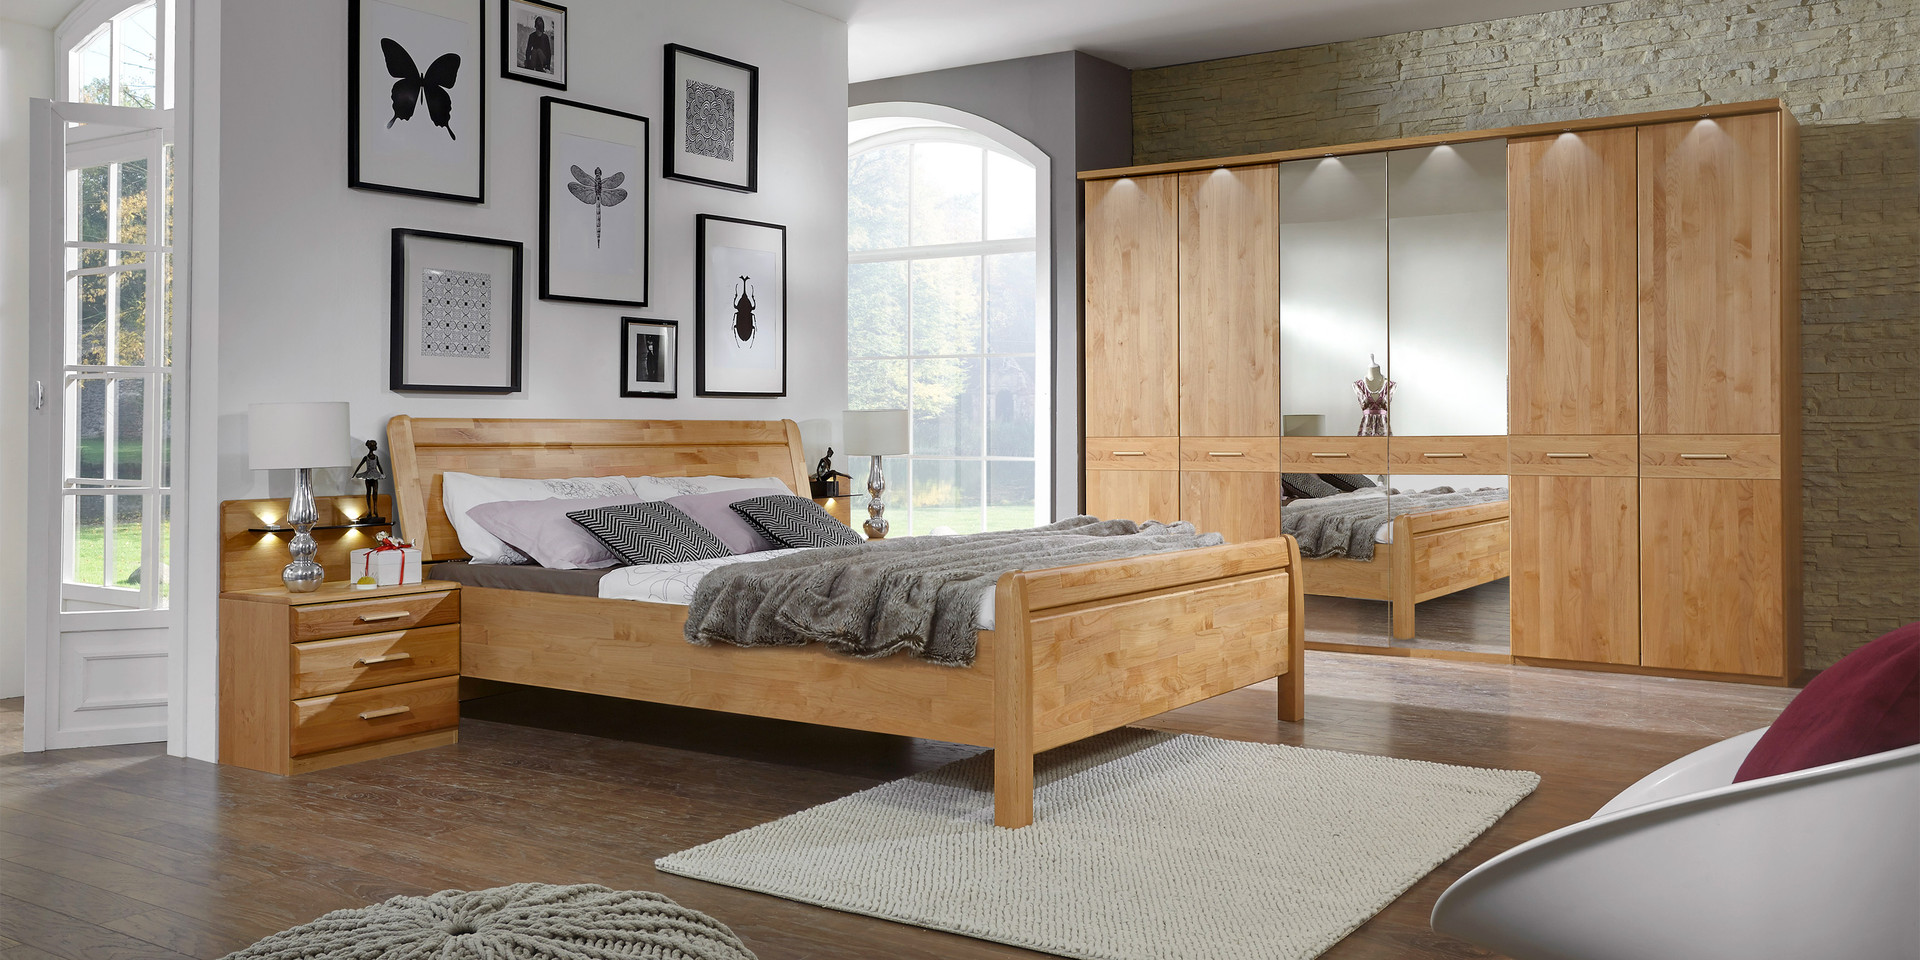 entdecken sie hier das programm toledo m belhersteller wiemann. Black Bedroom Furniture Sets. Home Design Ideas